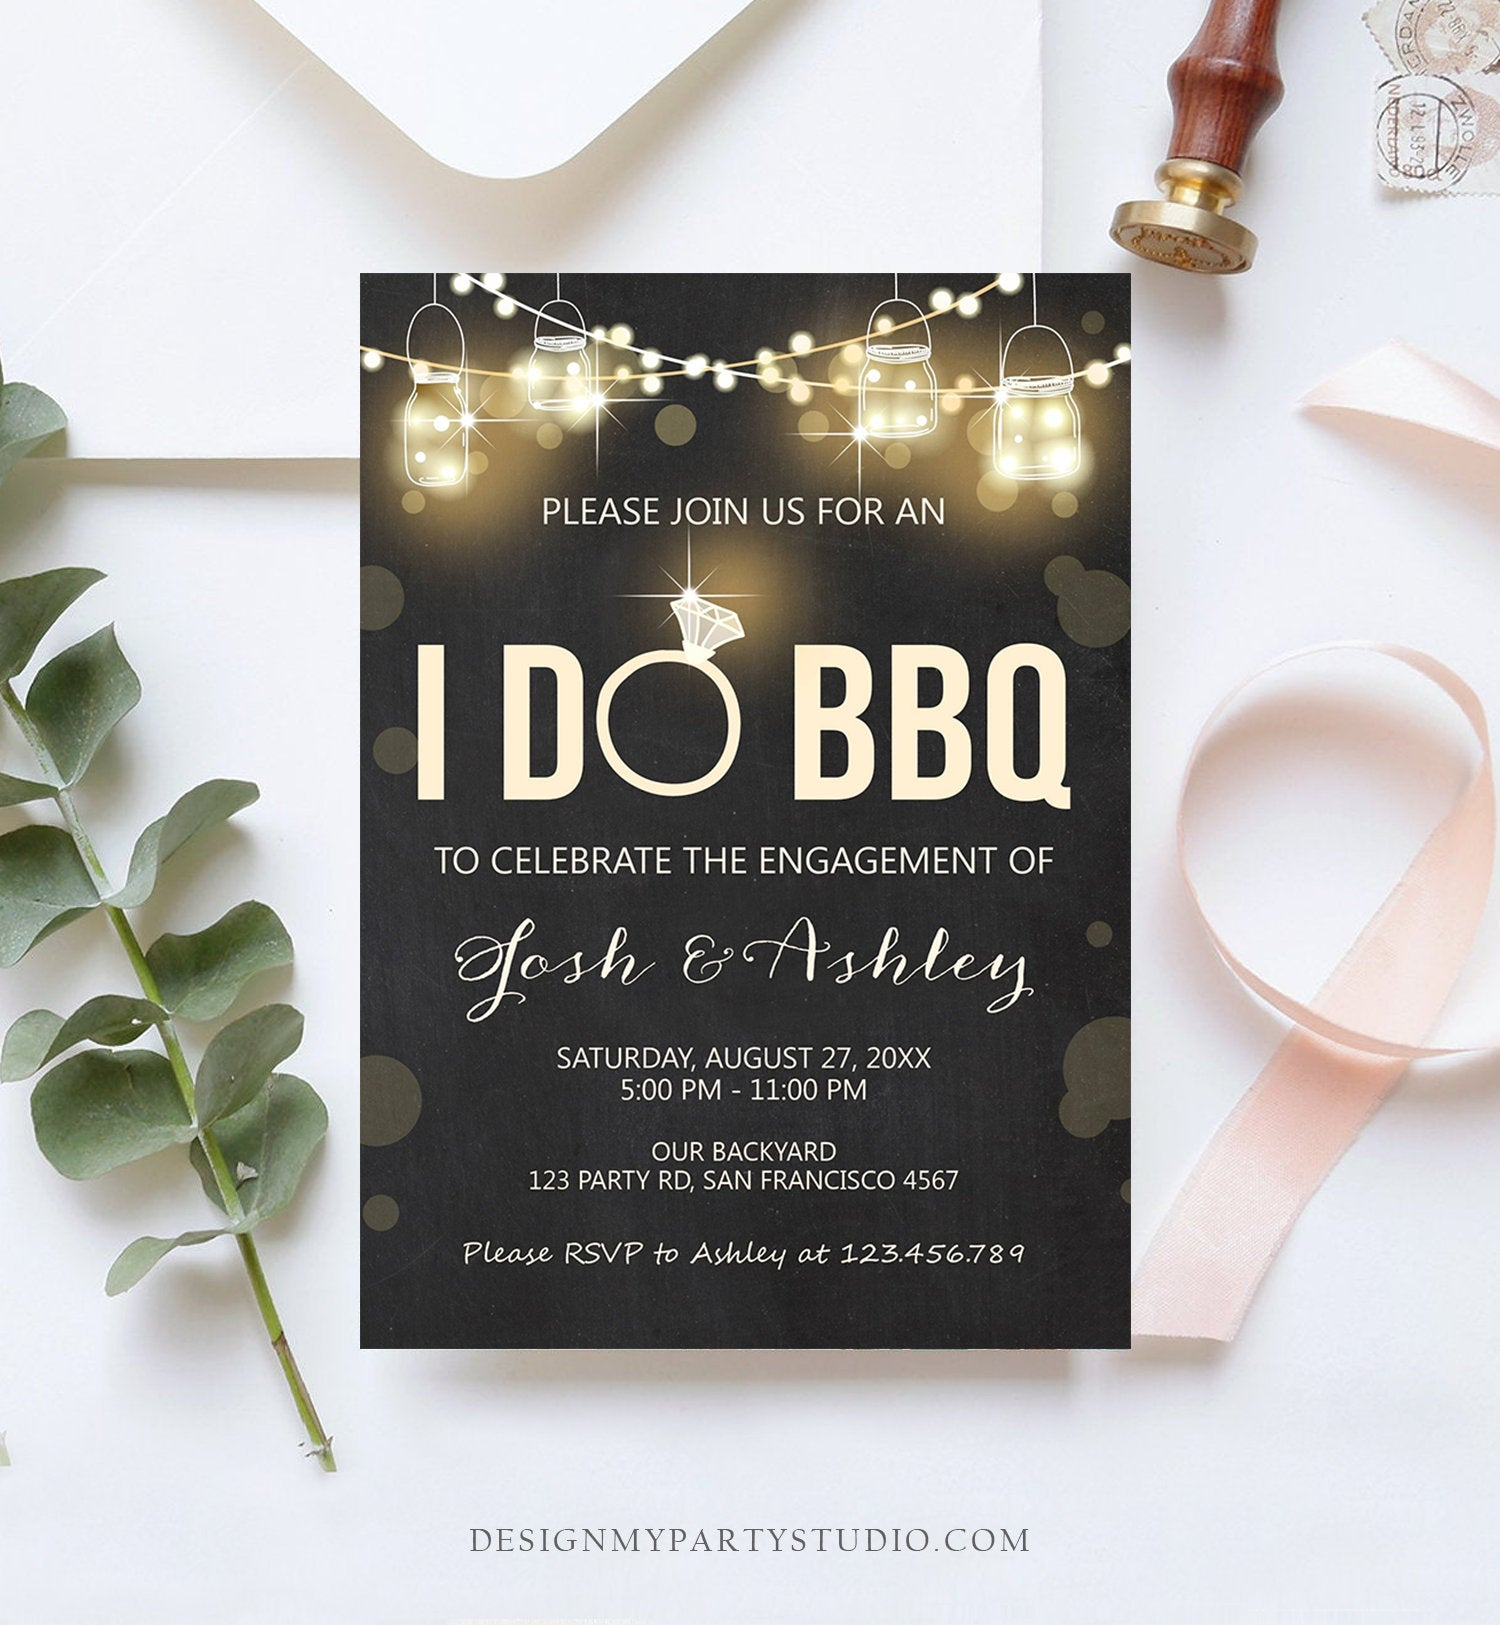 Editable I Do BBQ Invitation Couples Shower Invite Engagement Party Rustic Chalk Lights Jars Download Printable Template Corjl Digital 0015